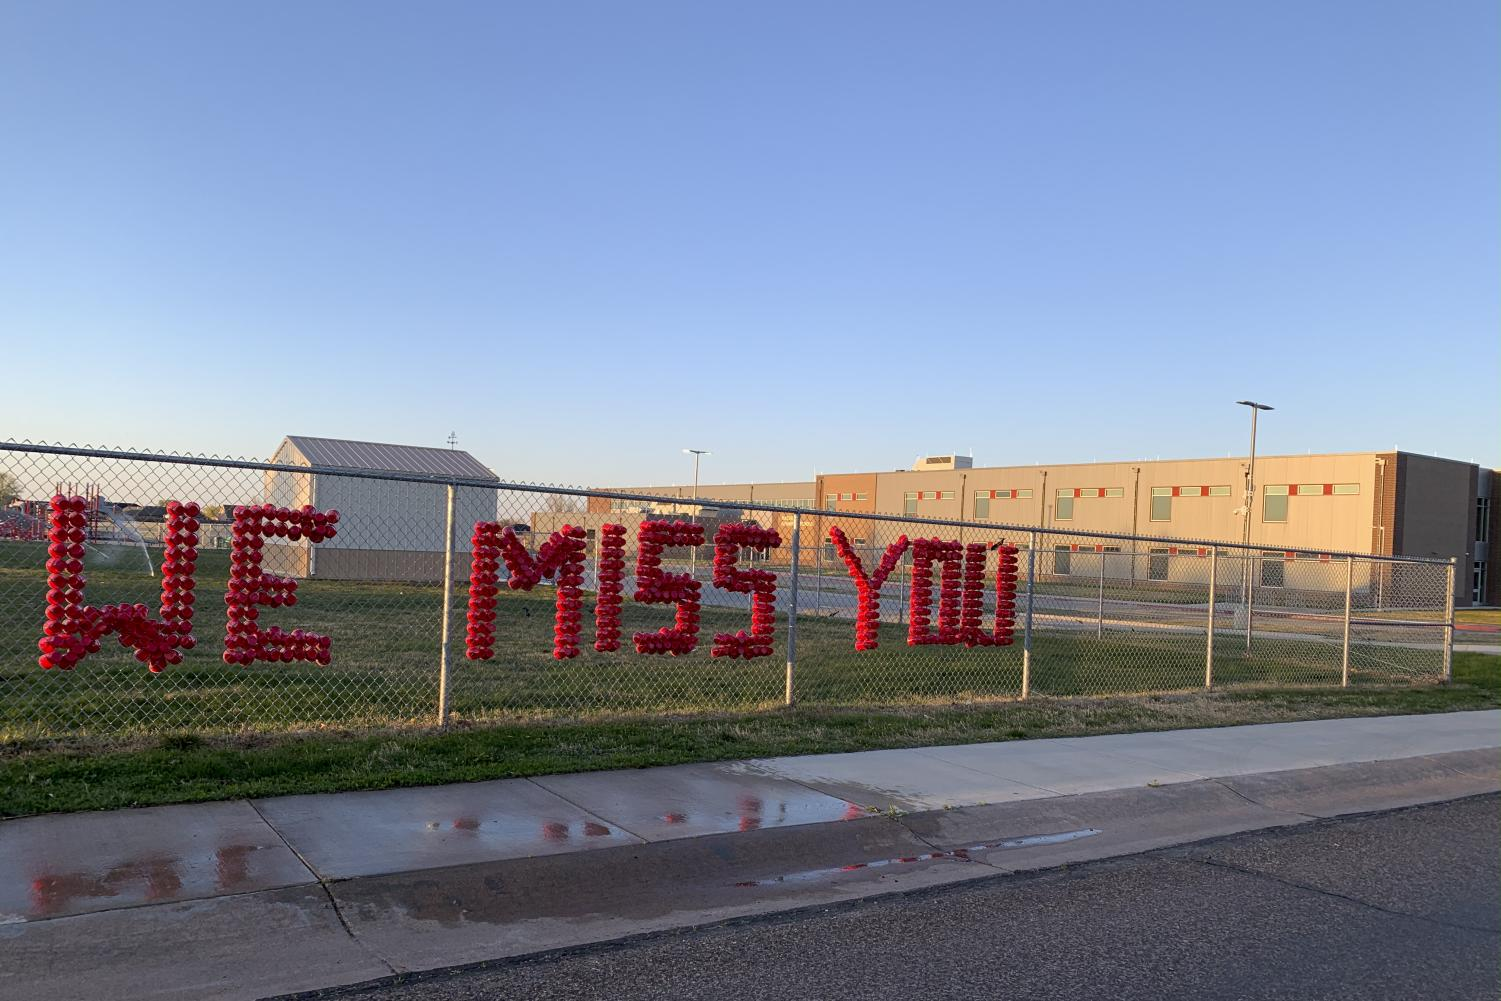 McArthur+Elementary+school+placed+these+cups+to+spell+%E2%80%9CWe+miss+you%E2%80%9D+on+the+fence+to+show+their+students+that+they+are+still+thinking+of+them+through+tough+times.+